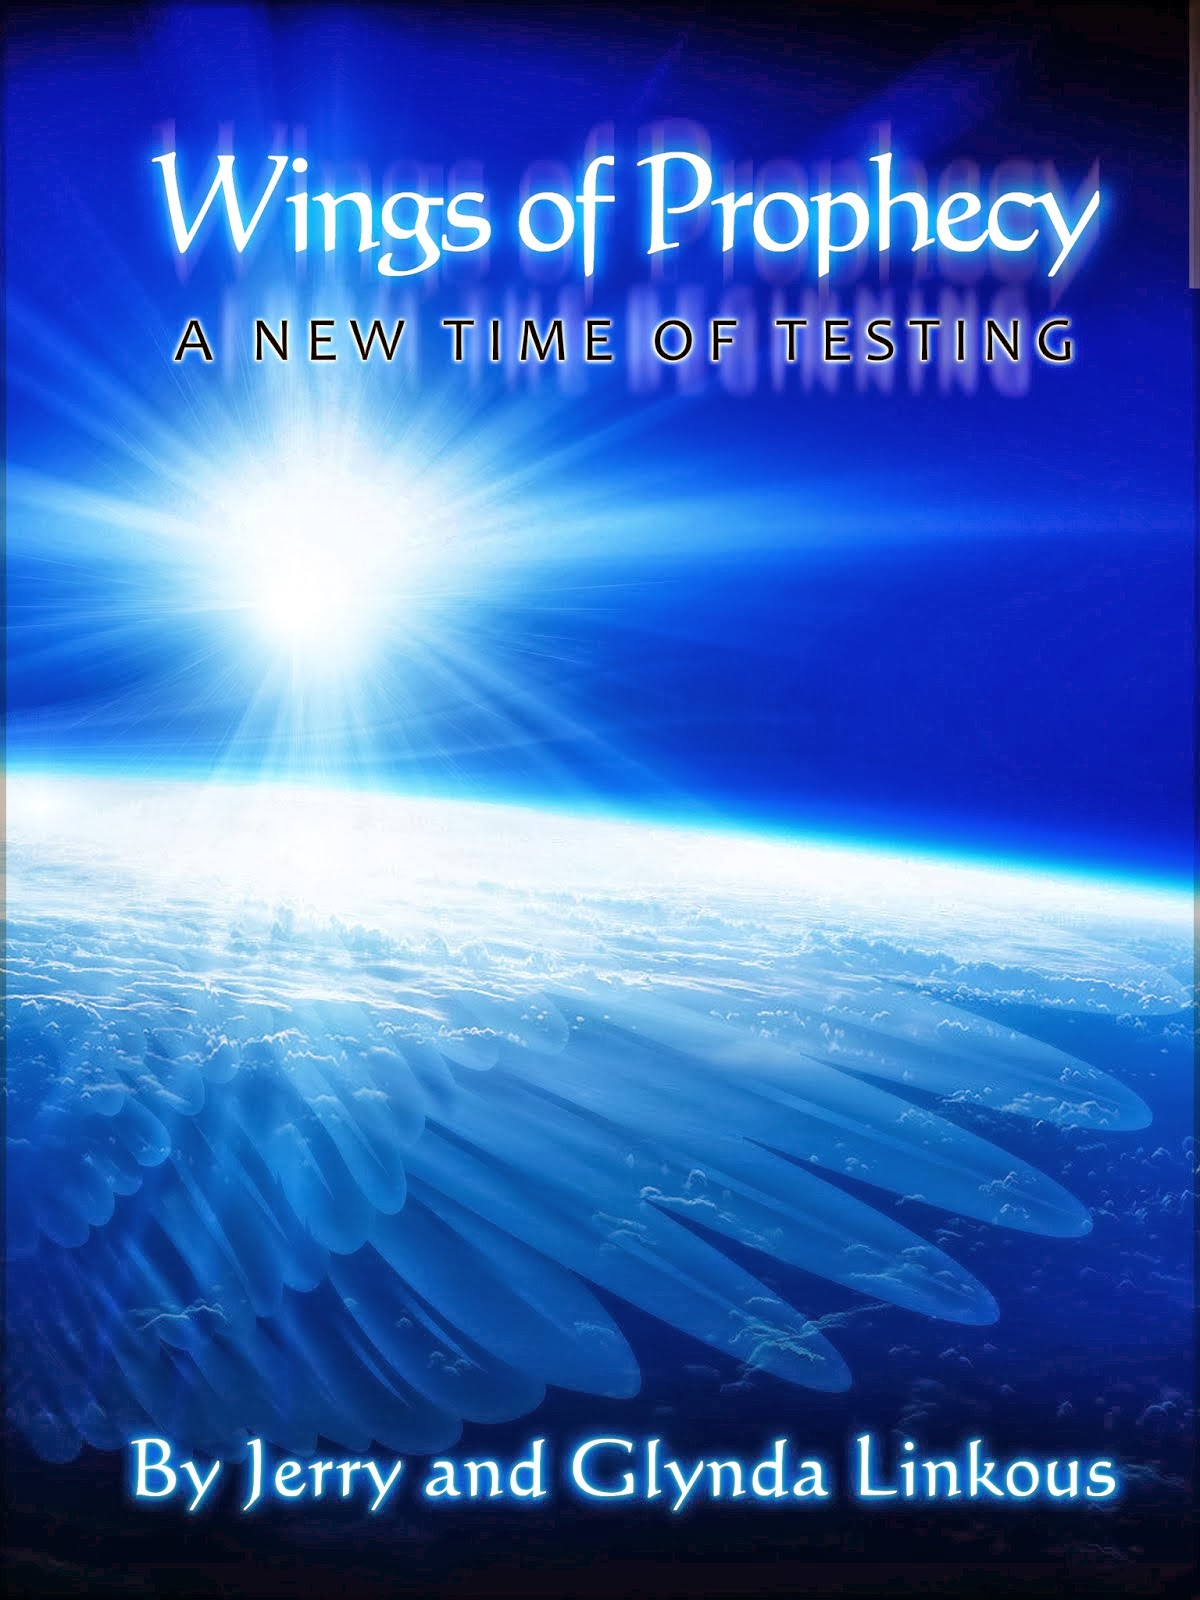 Wings of Prophecy - A New Time of Testing Now Available in Print or Kindle